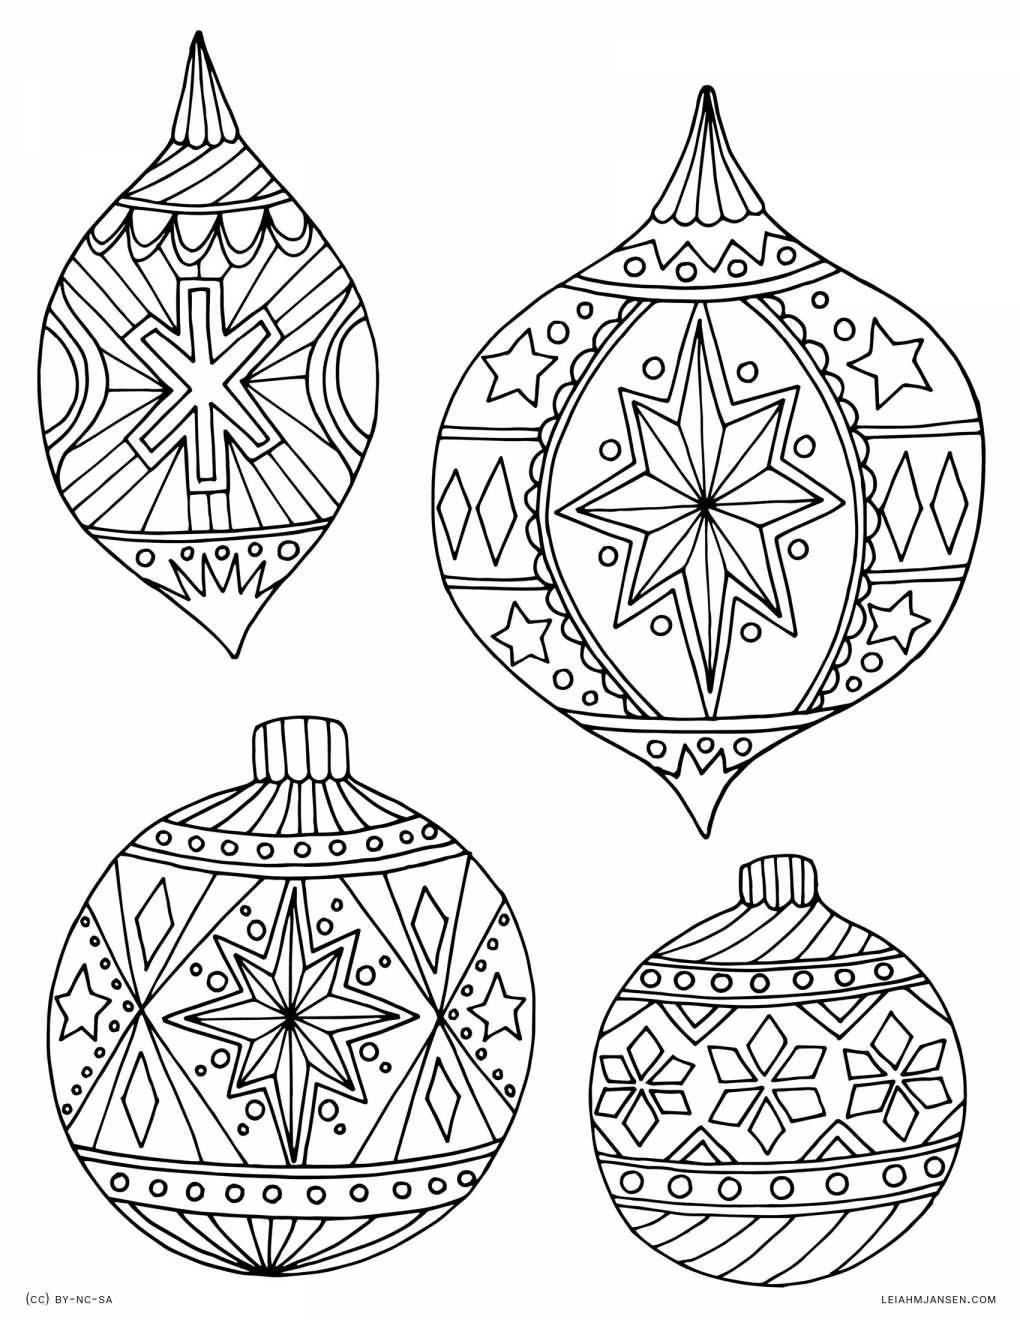 It's just an image of Impeccable Christmas Ornaments Printable